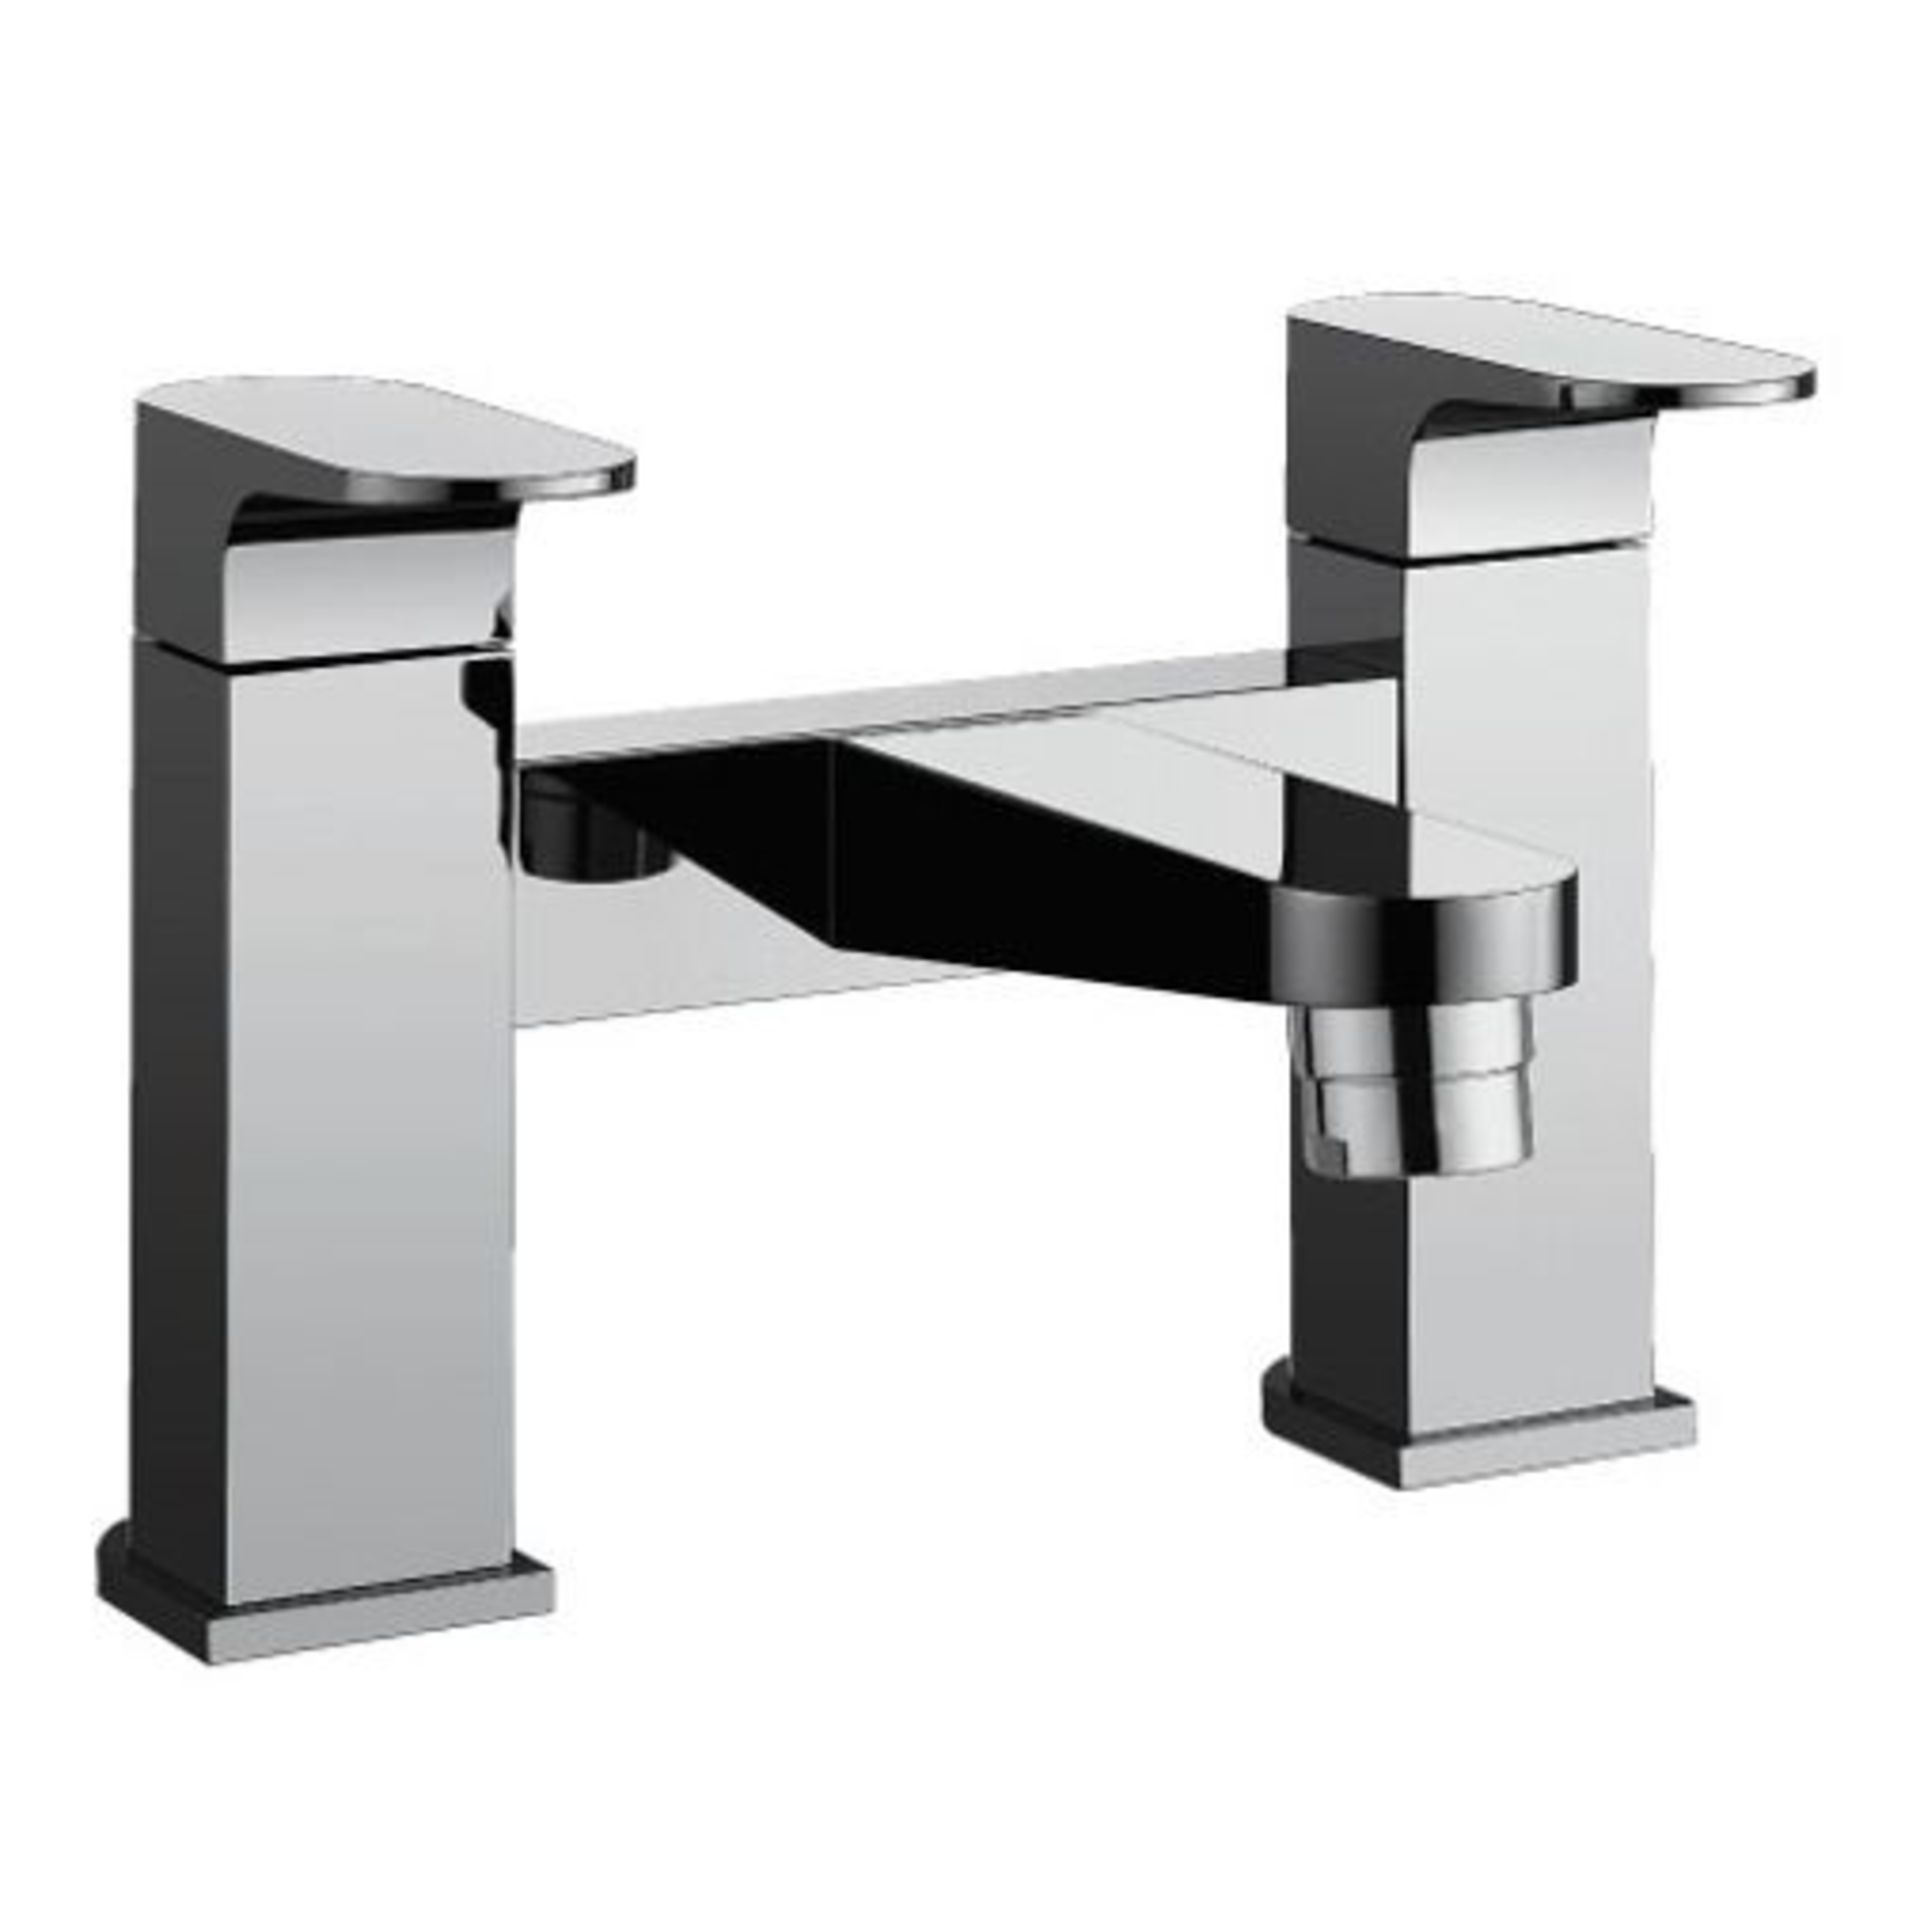 Lot 10 - Bathstore 'Track' very high quality, designer bath mixer tap.